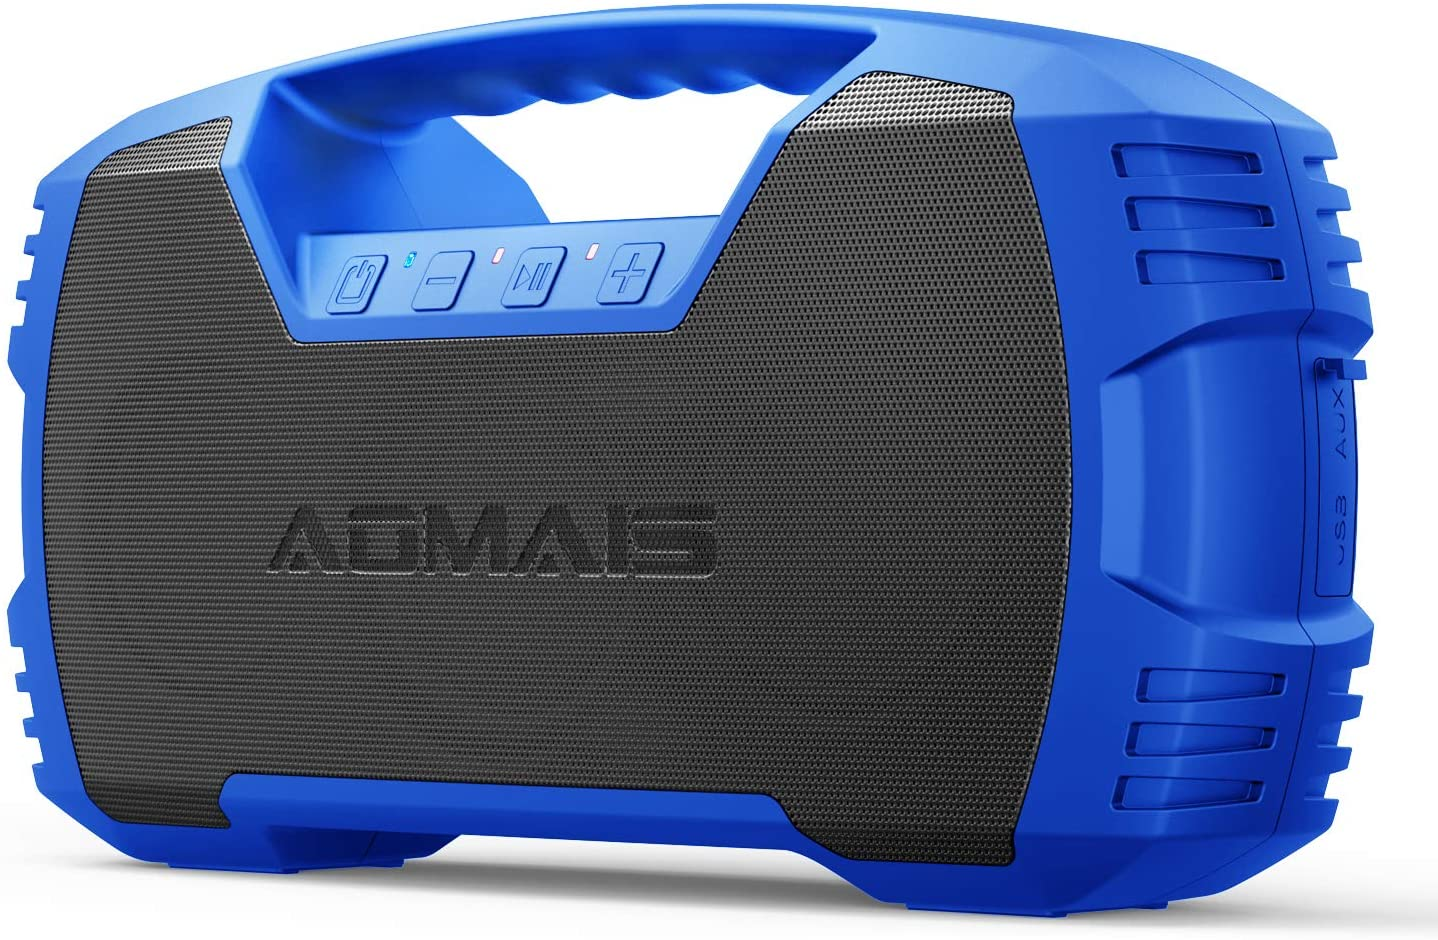 AOMAIS GO Bluetooth Speakers,Waterproof Portable Indoor/Outdoor 40W Wireless Stereo Pairing Booming Bass Speaker,40-Hour Playtime with 10000mAh Power Bank,Durable for Home Party,Camping(Blue)